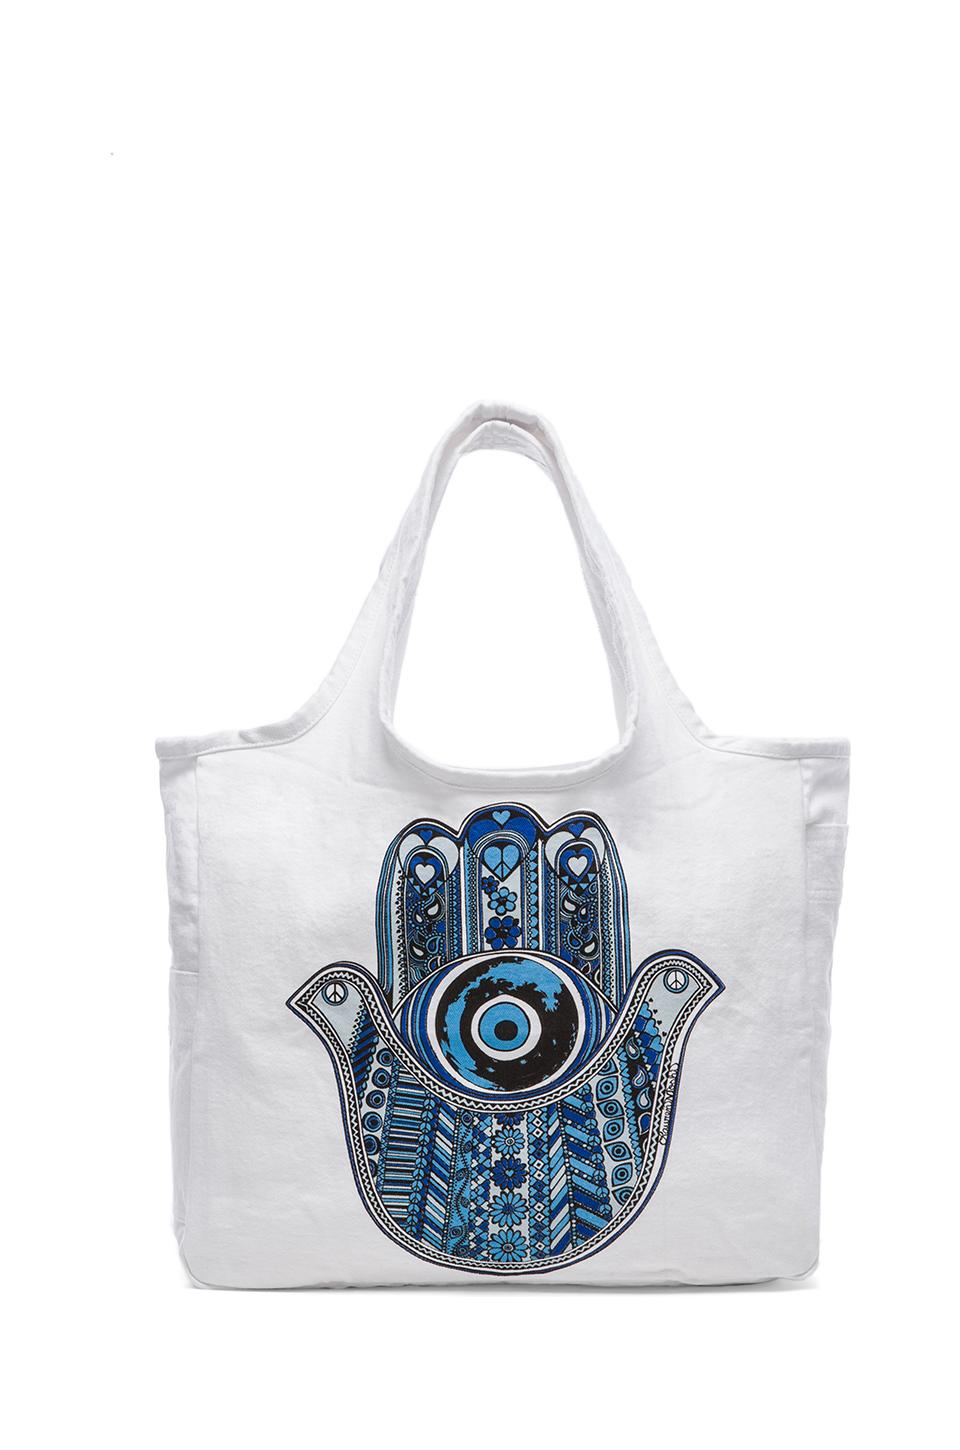 Lauren Moshi Taylor Med Blue Hamsa Tote Bag in White